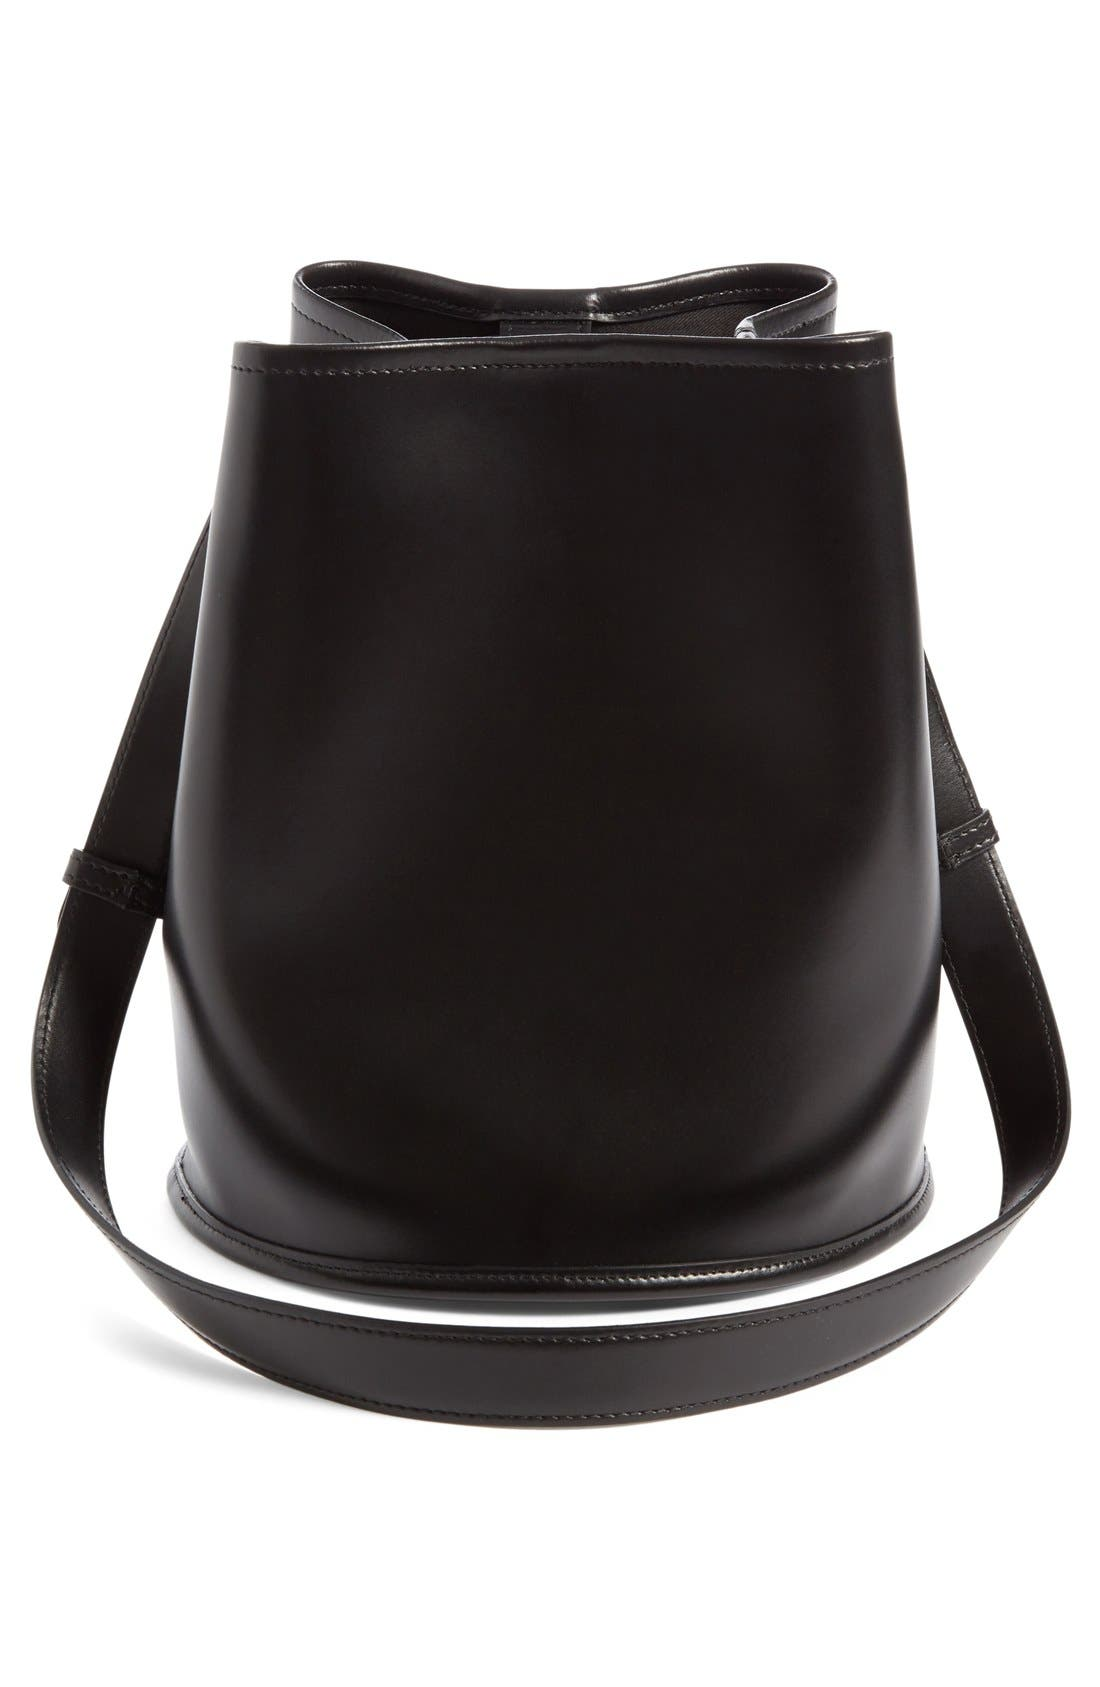 Alternate Image 2  - Creatures of Comfort Small Leather Bucket Bag